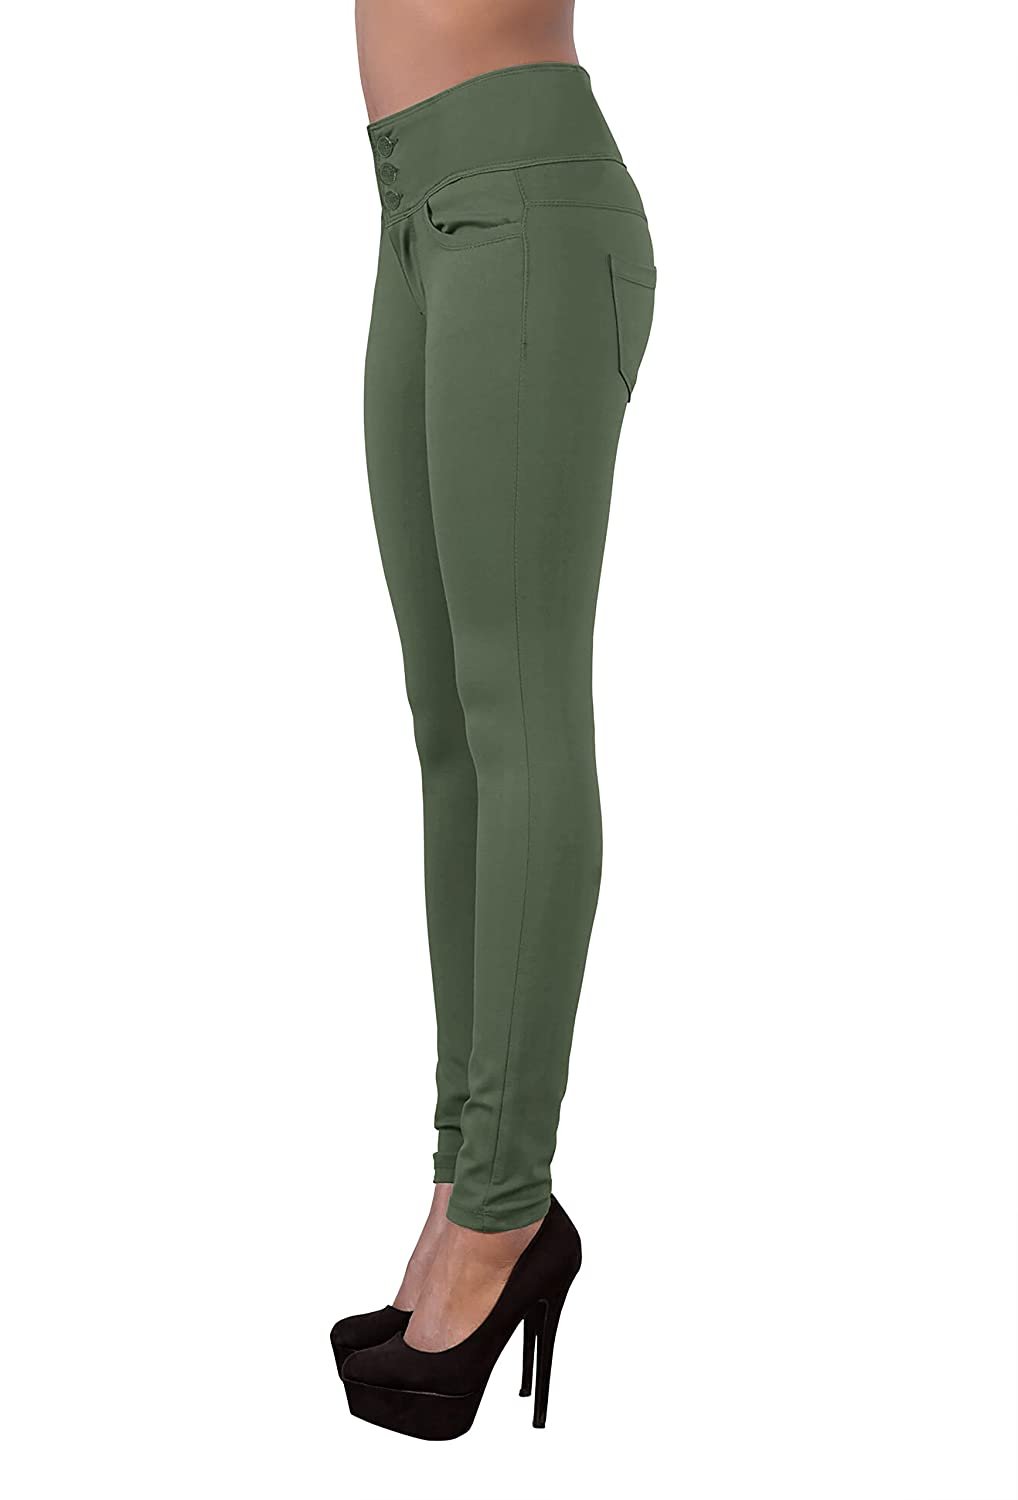 Hybrid /& Company Womens Butt Lift V3 Super Comfy Stretch Denim Jeans P45066SK Olive 9